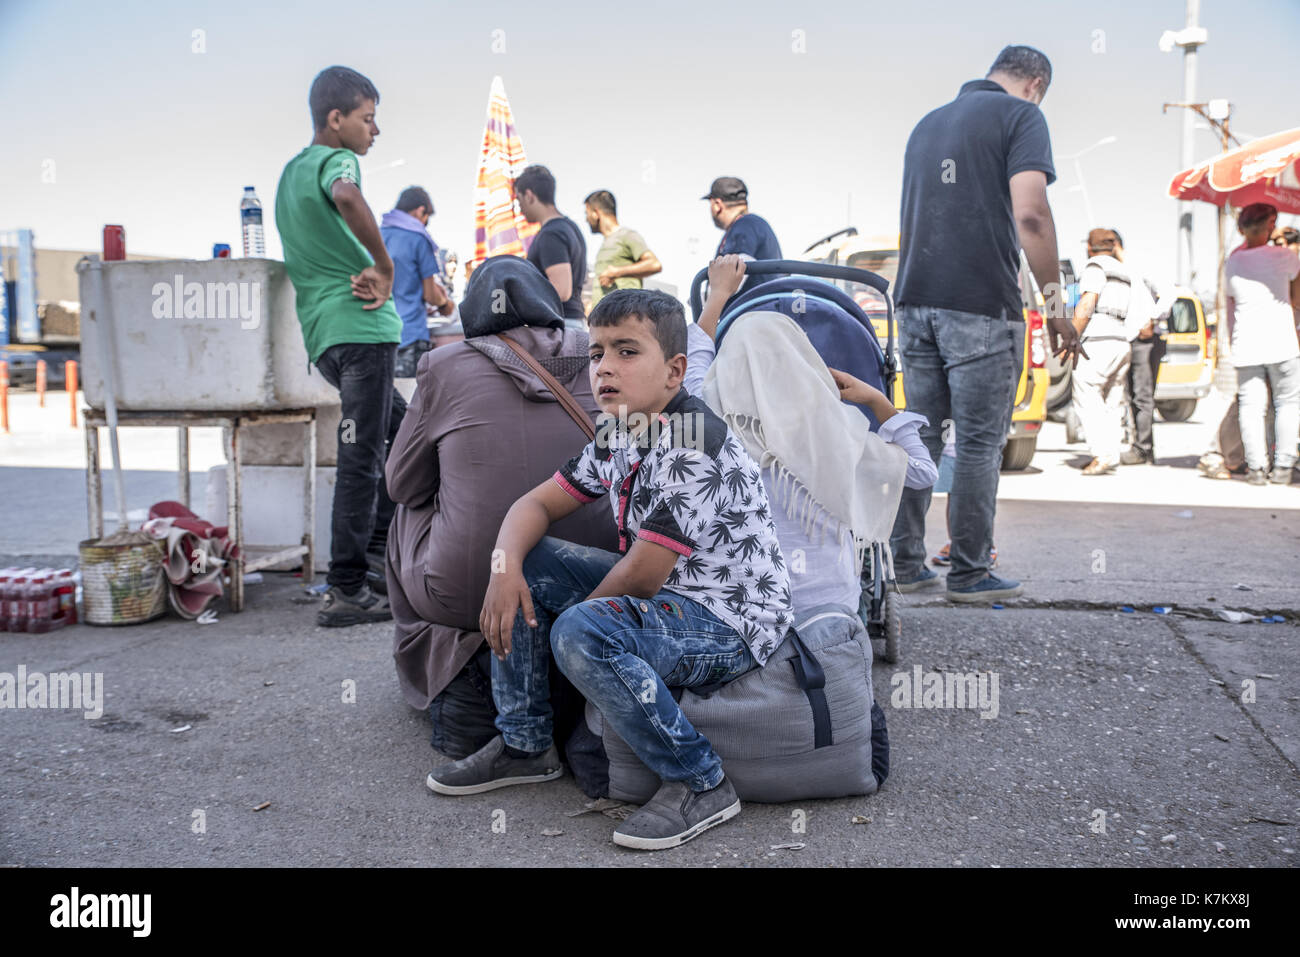 Syrian refugees (mainly from Aleppo and Idlib) entering Turkey in Kilis. Most of them will live in refugee camp. September 8, 2017; Kilis, Turkey. - Stock Image